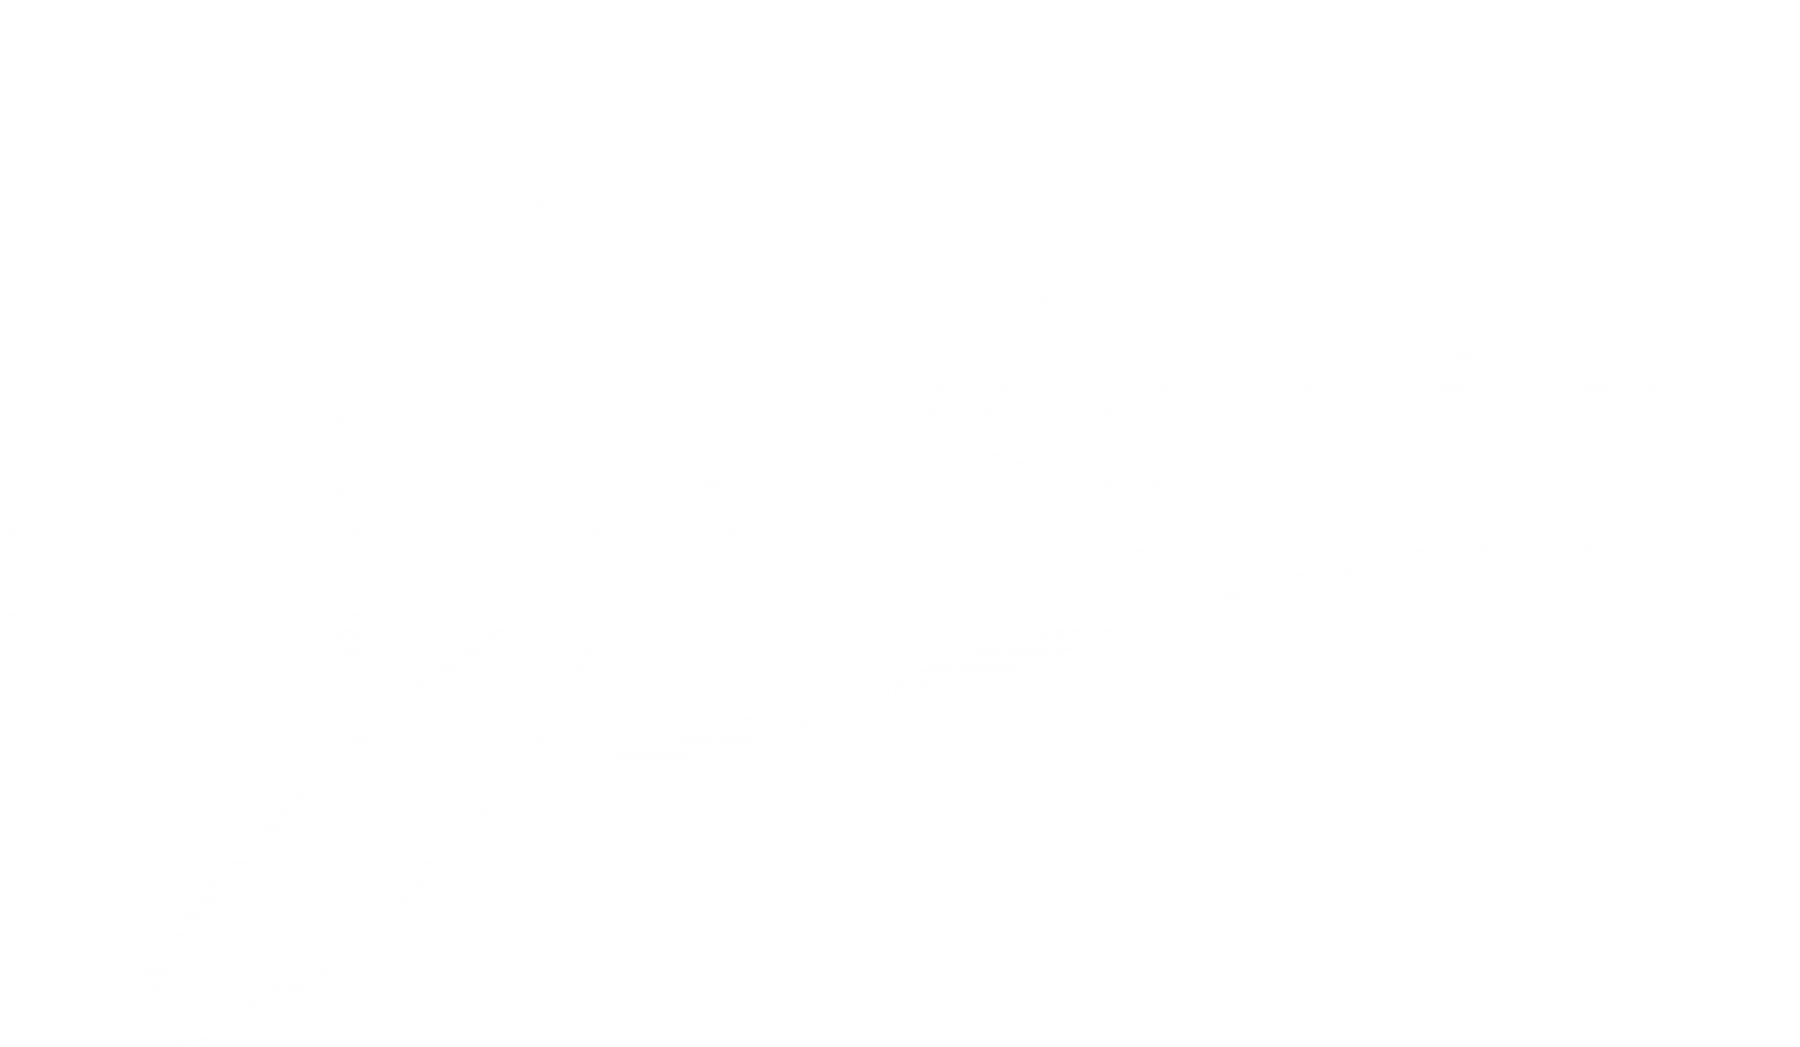 Cafe Baffico